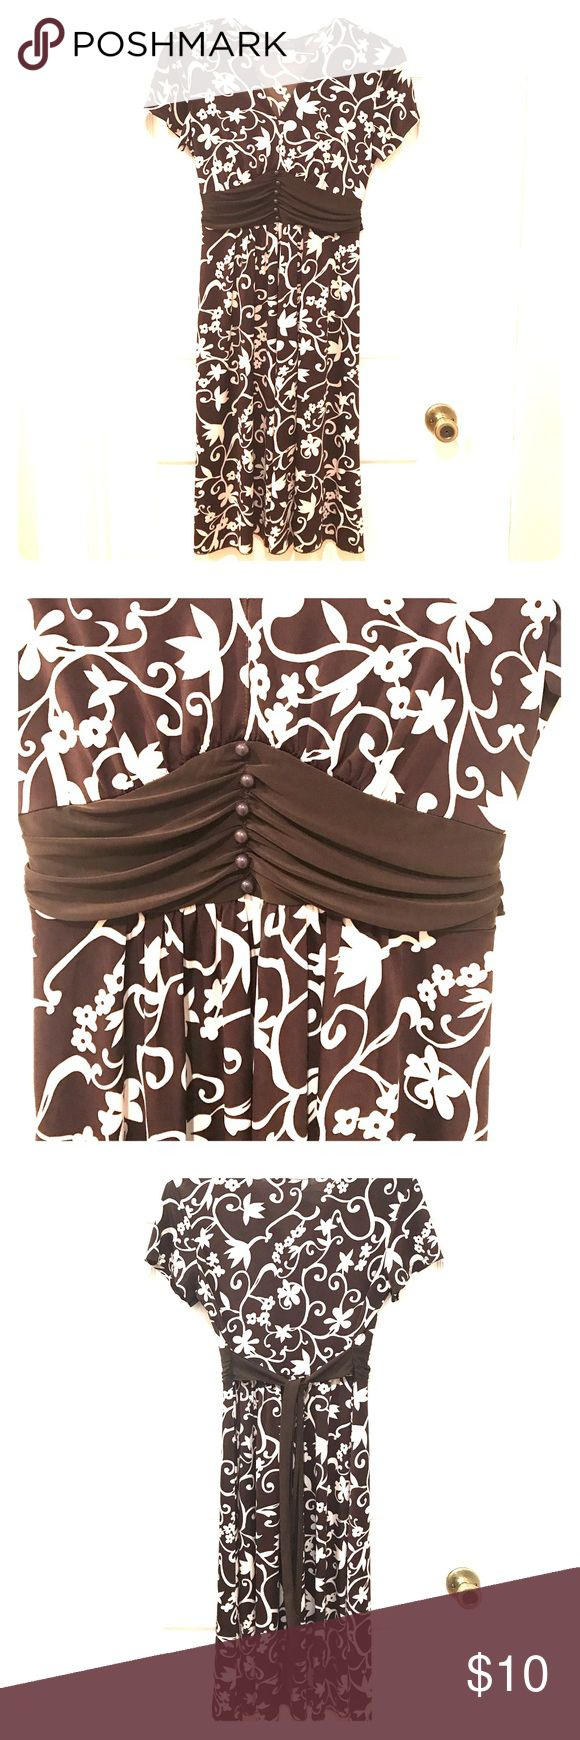 Spring dress Beautiful details on this brown/ivory floral print dress, buttons, roushing, tie in the back, short sleeves, v-neck.  🚭🏡✅🐶 Dresses Midi